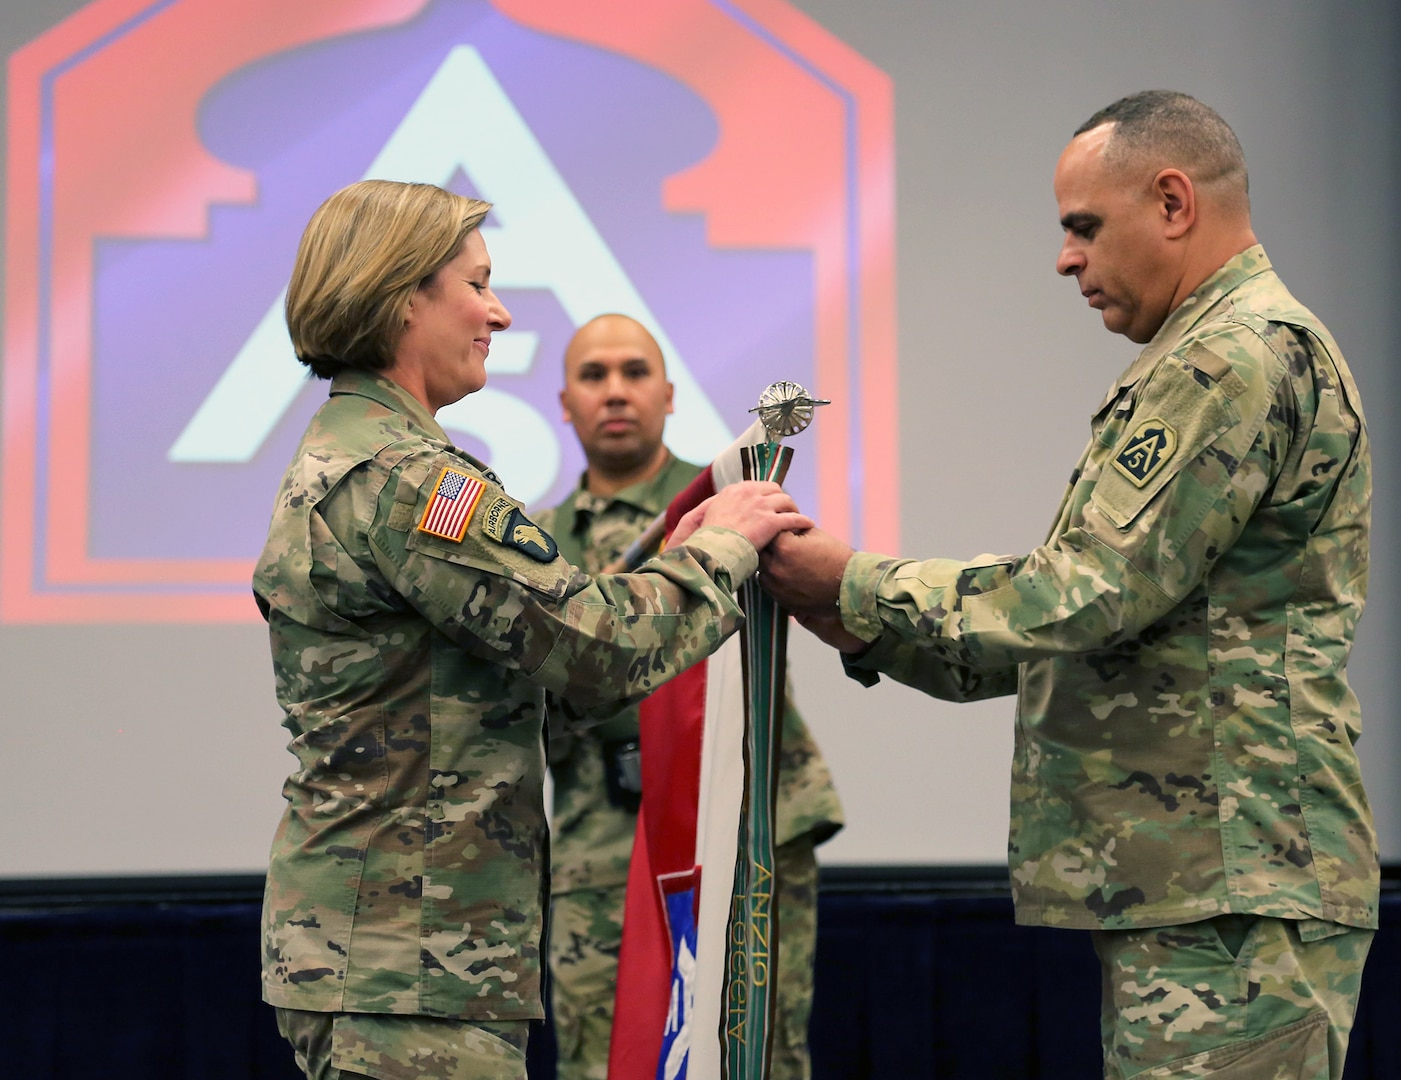 Lt. Gen. Laura Richardson, commanding general, U.S. Army North (Fifth Army) and senior commander, Joint Base San Antonio-Fort Sam Houston and JBSA-Camp Bullis, and Army North Command Sgt. Maj. Alberto Delgado, senior enlisted leader, JBSA-Fort Sam Houston and JBSA-Camp Bullis, place a streamer on the unit's colors during a unit birthday ceremony at the Military & Family Readiness Center at JBSA-Fort Sam Houston Jan. 10.